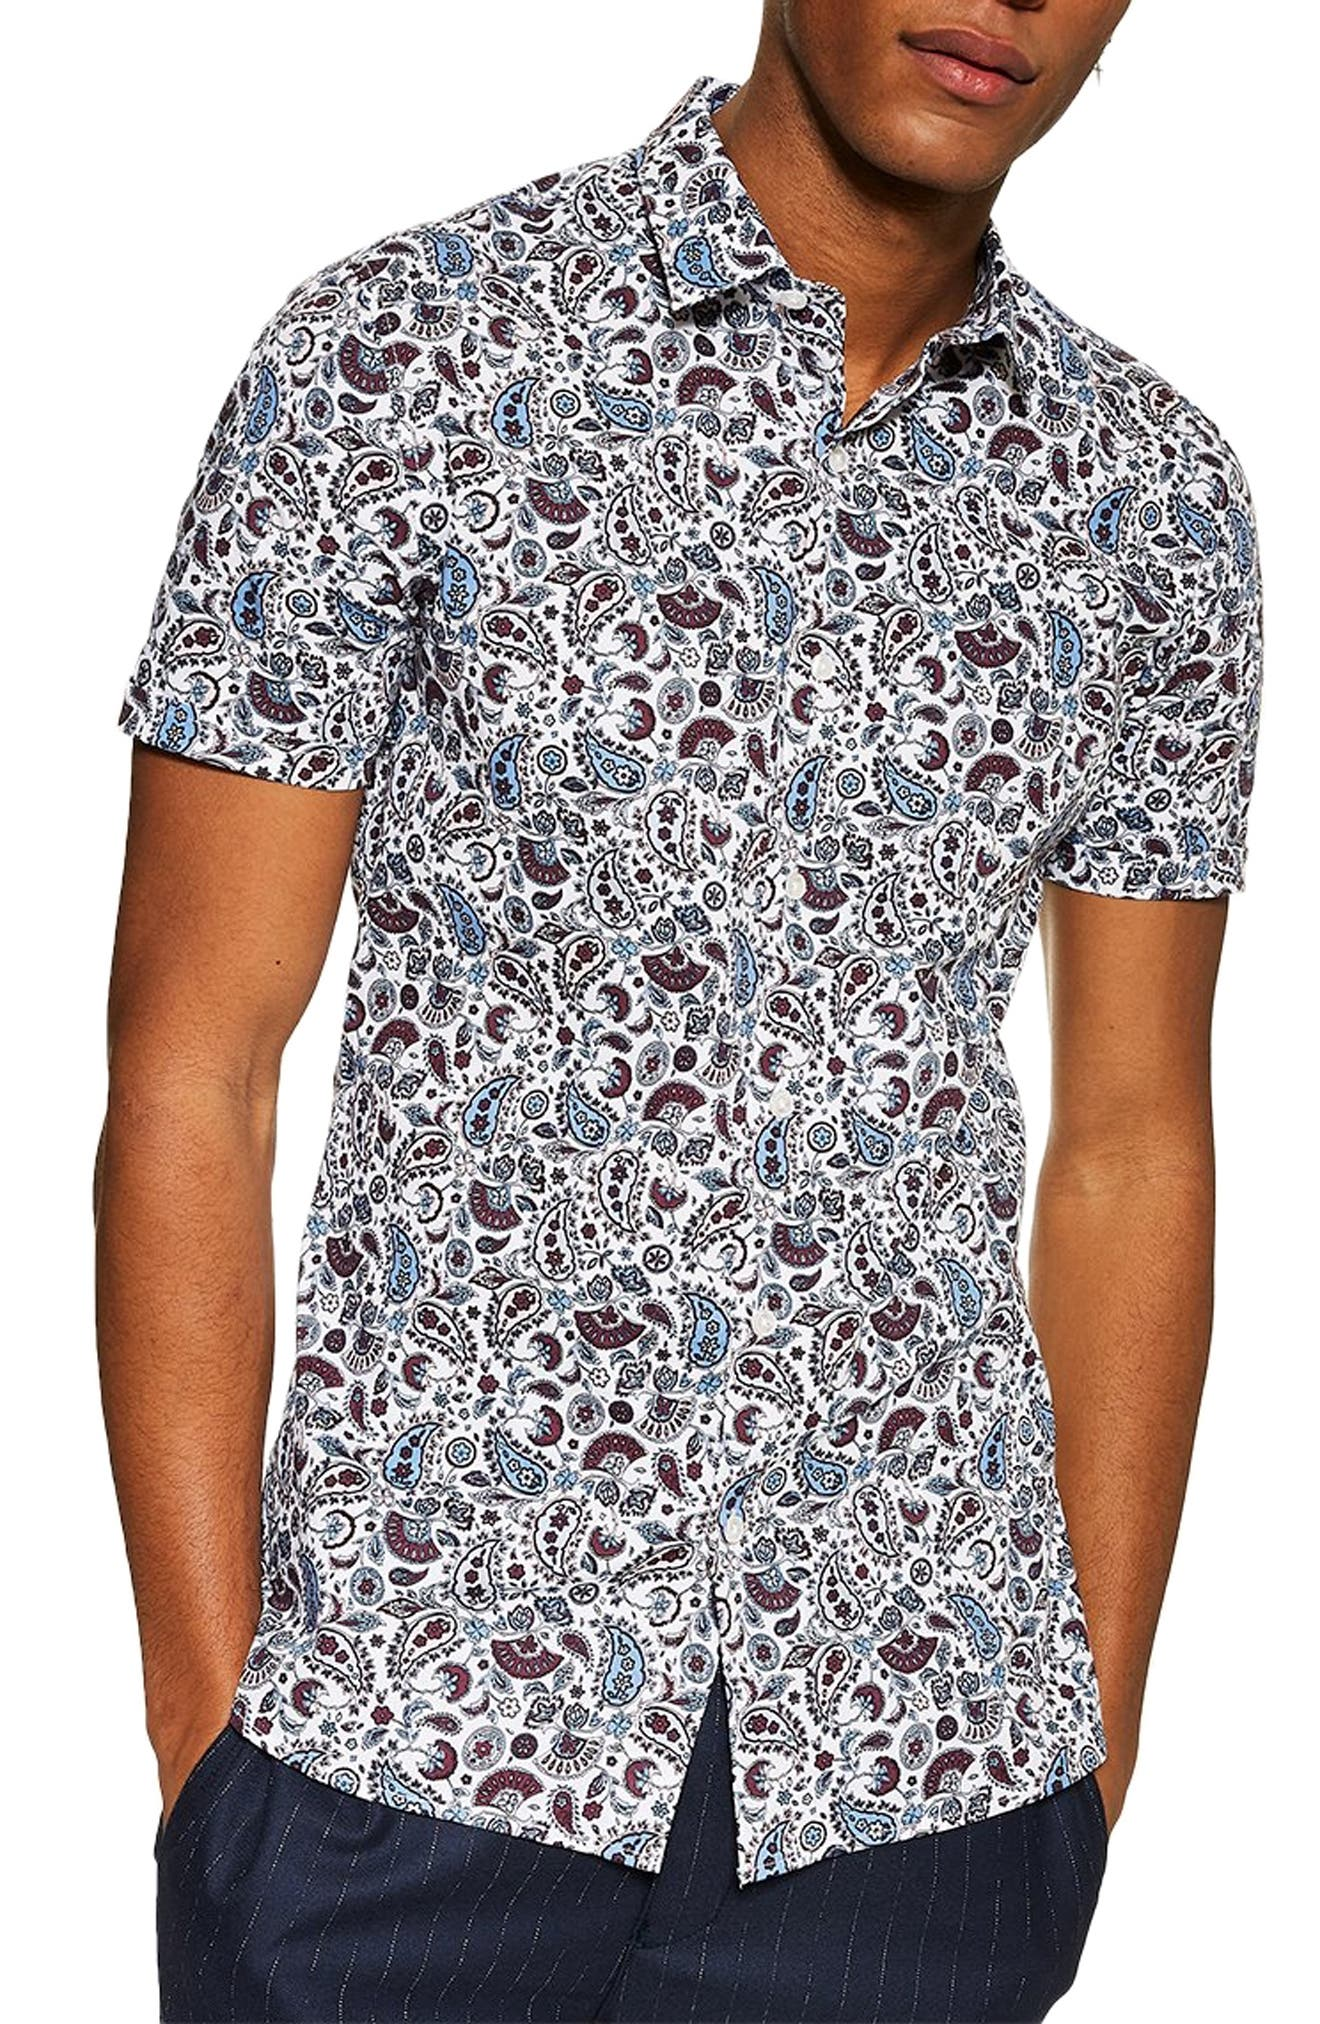 TOPMAN Paisley Print Slim Fit Shirt, Main, color, BLUE MULTI